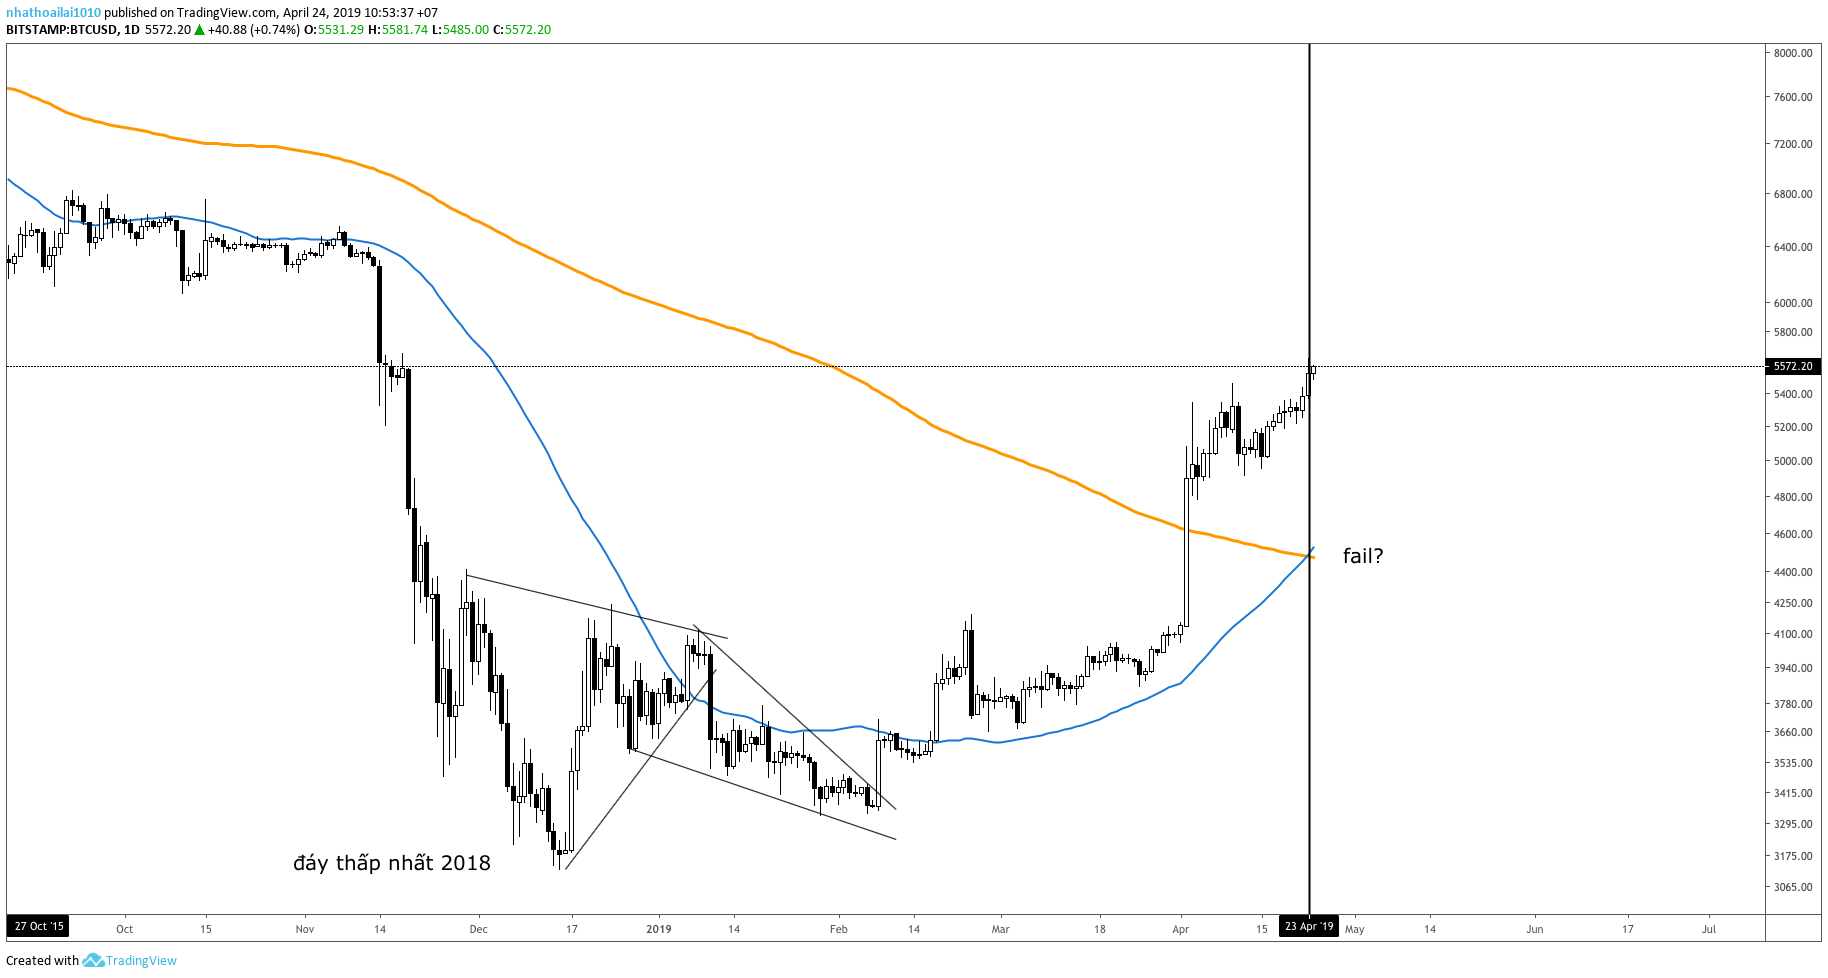 golden-cross-bitcoin-traderviet8.